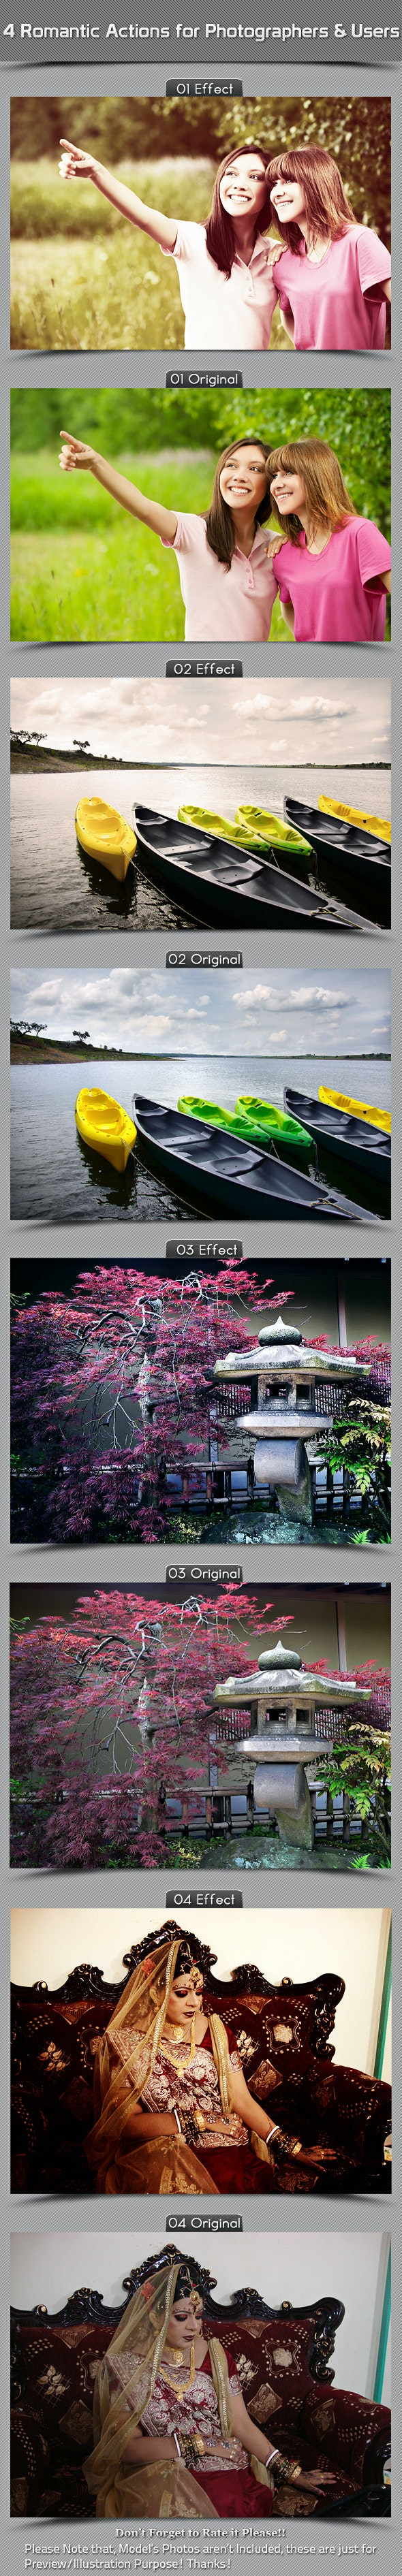 4 Romantic Actions For Photographers And Users - Actions Photoshop